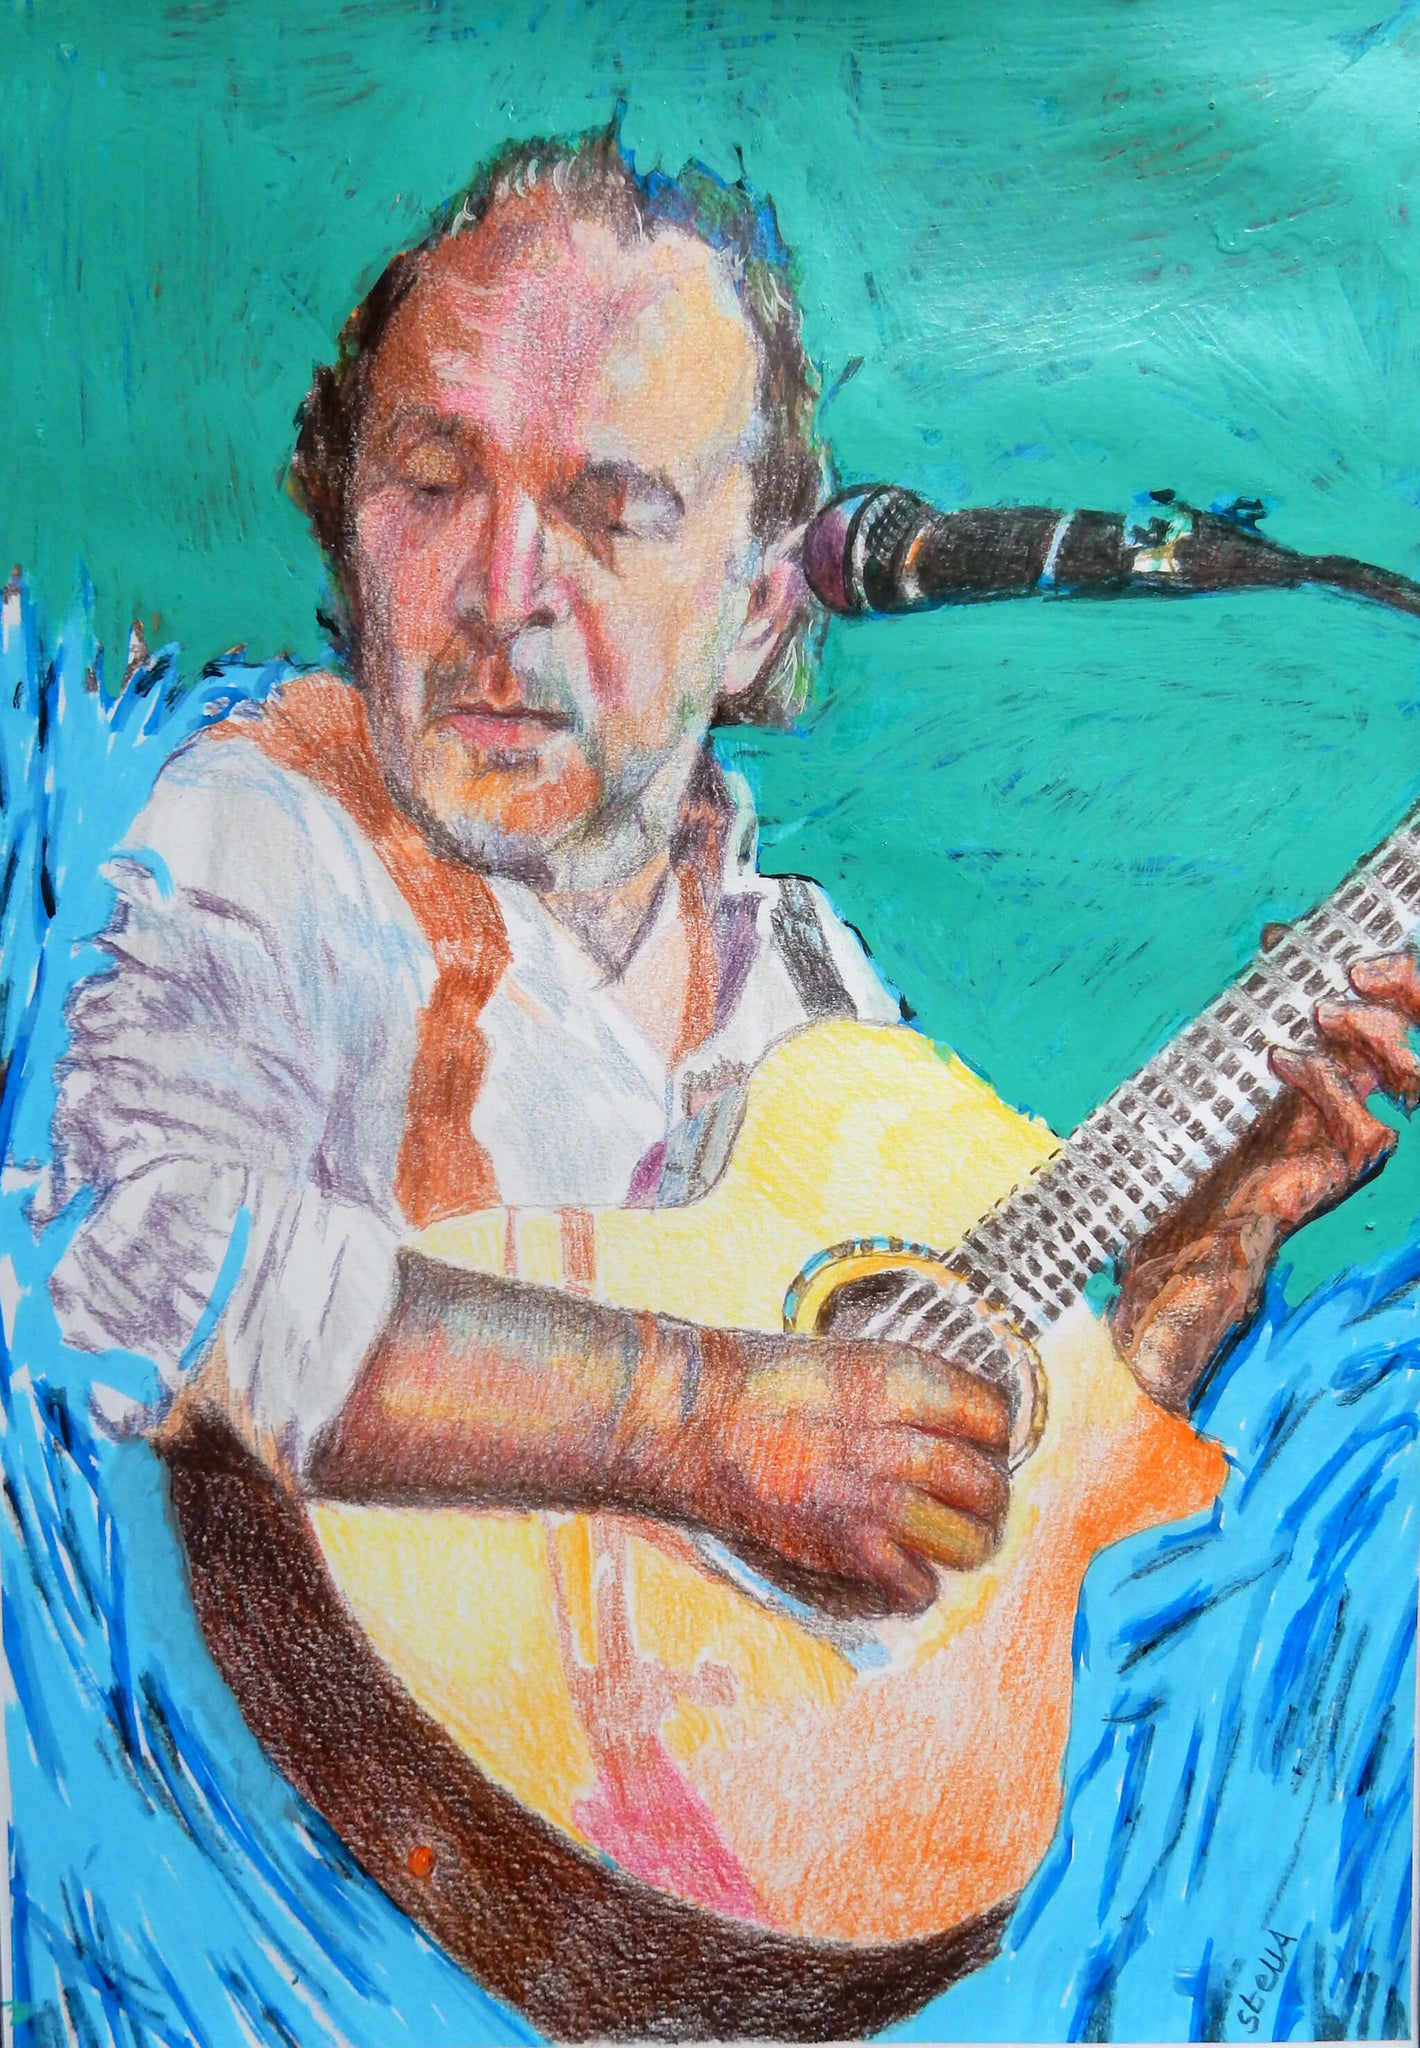 Robert Hokum Founder Ealing Blues Festival drawn mixed media portrait by Stella Tooth.